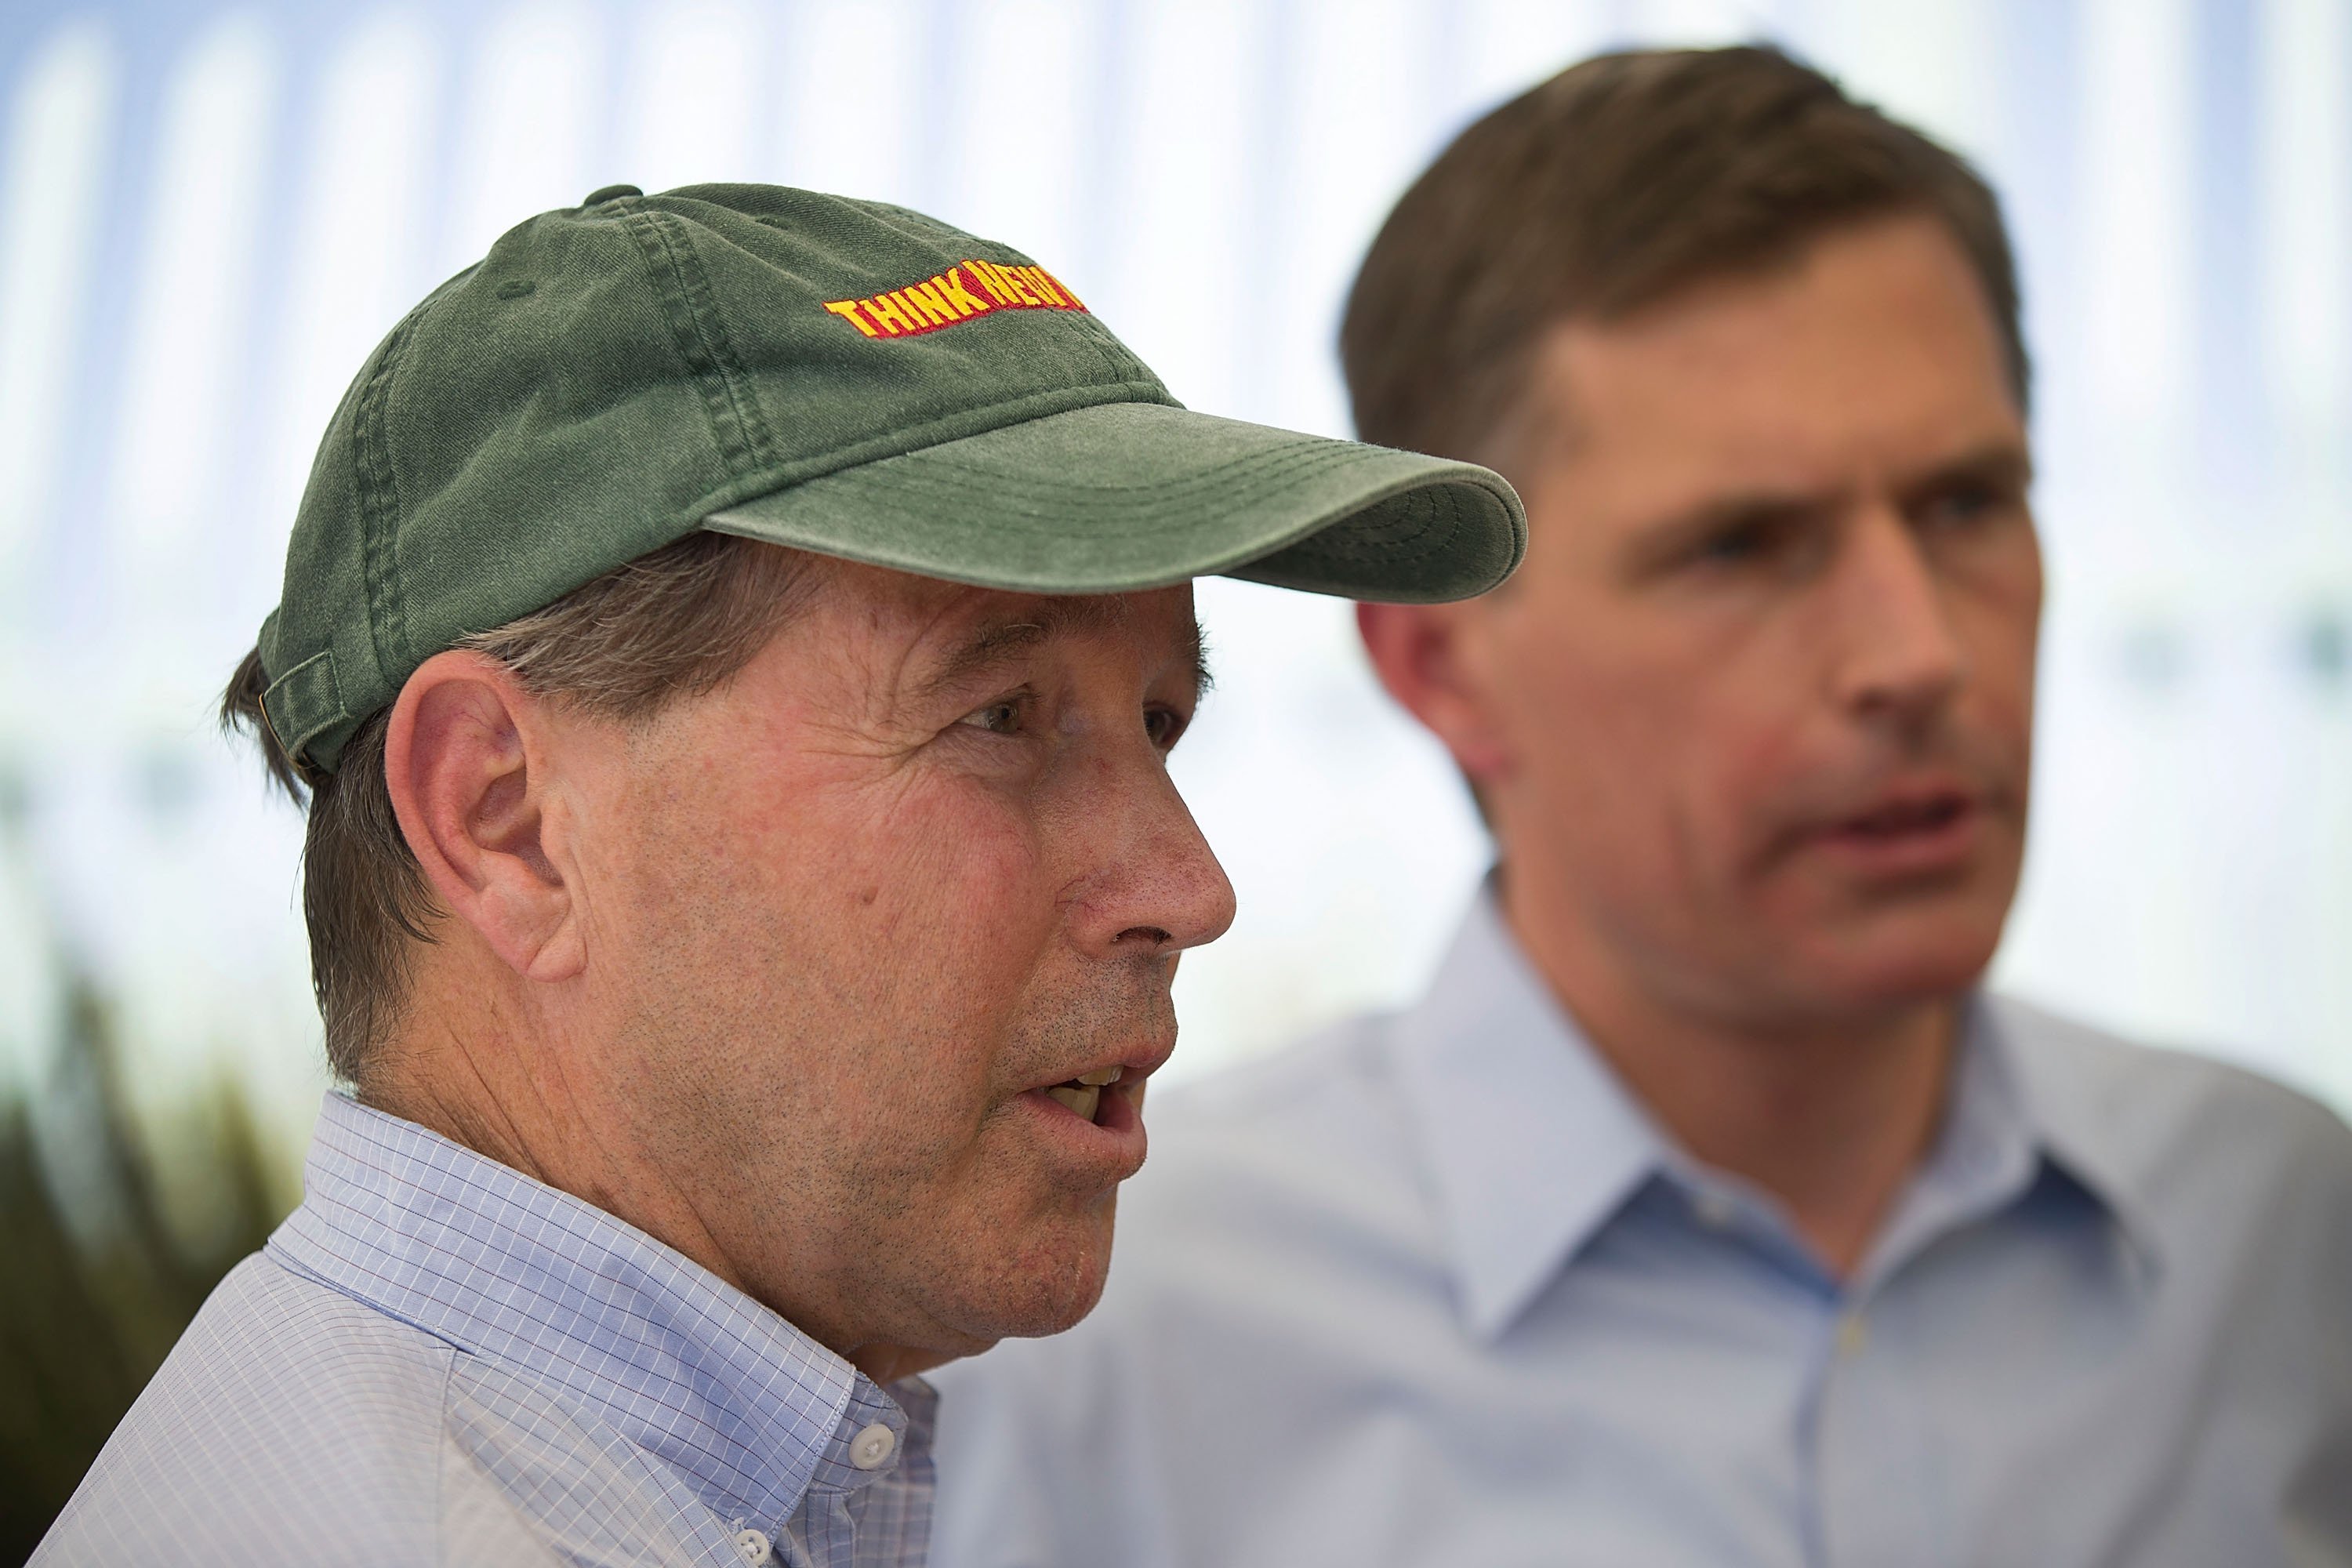 U.S. Senators Tom Udall and Martin Heinrich (L-R) speak to the media after visiting the Paseo del Norte Port of Entry bridge on June 22, 2018 in El Paso, Texas. (Photo by Joe Raedle/Getty Images)